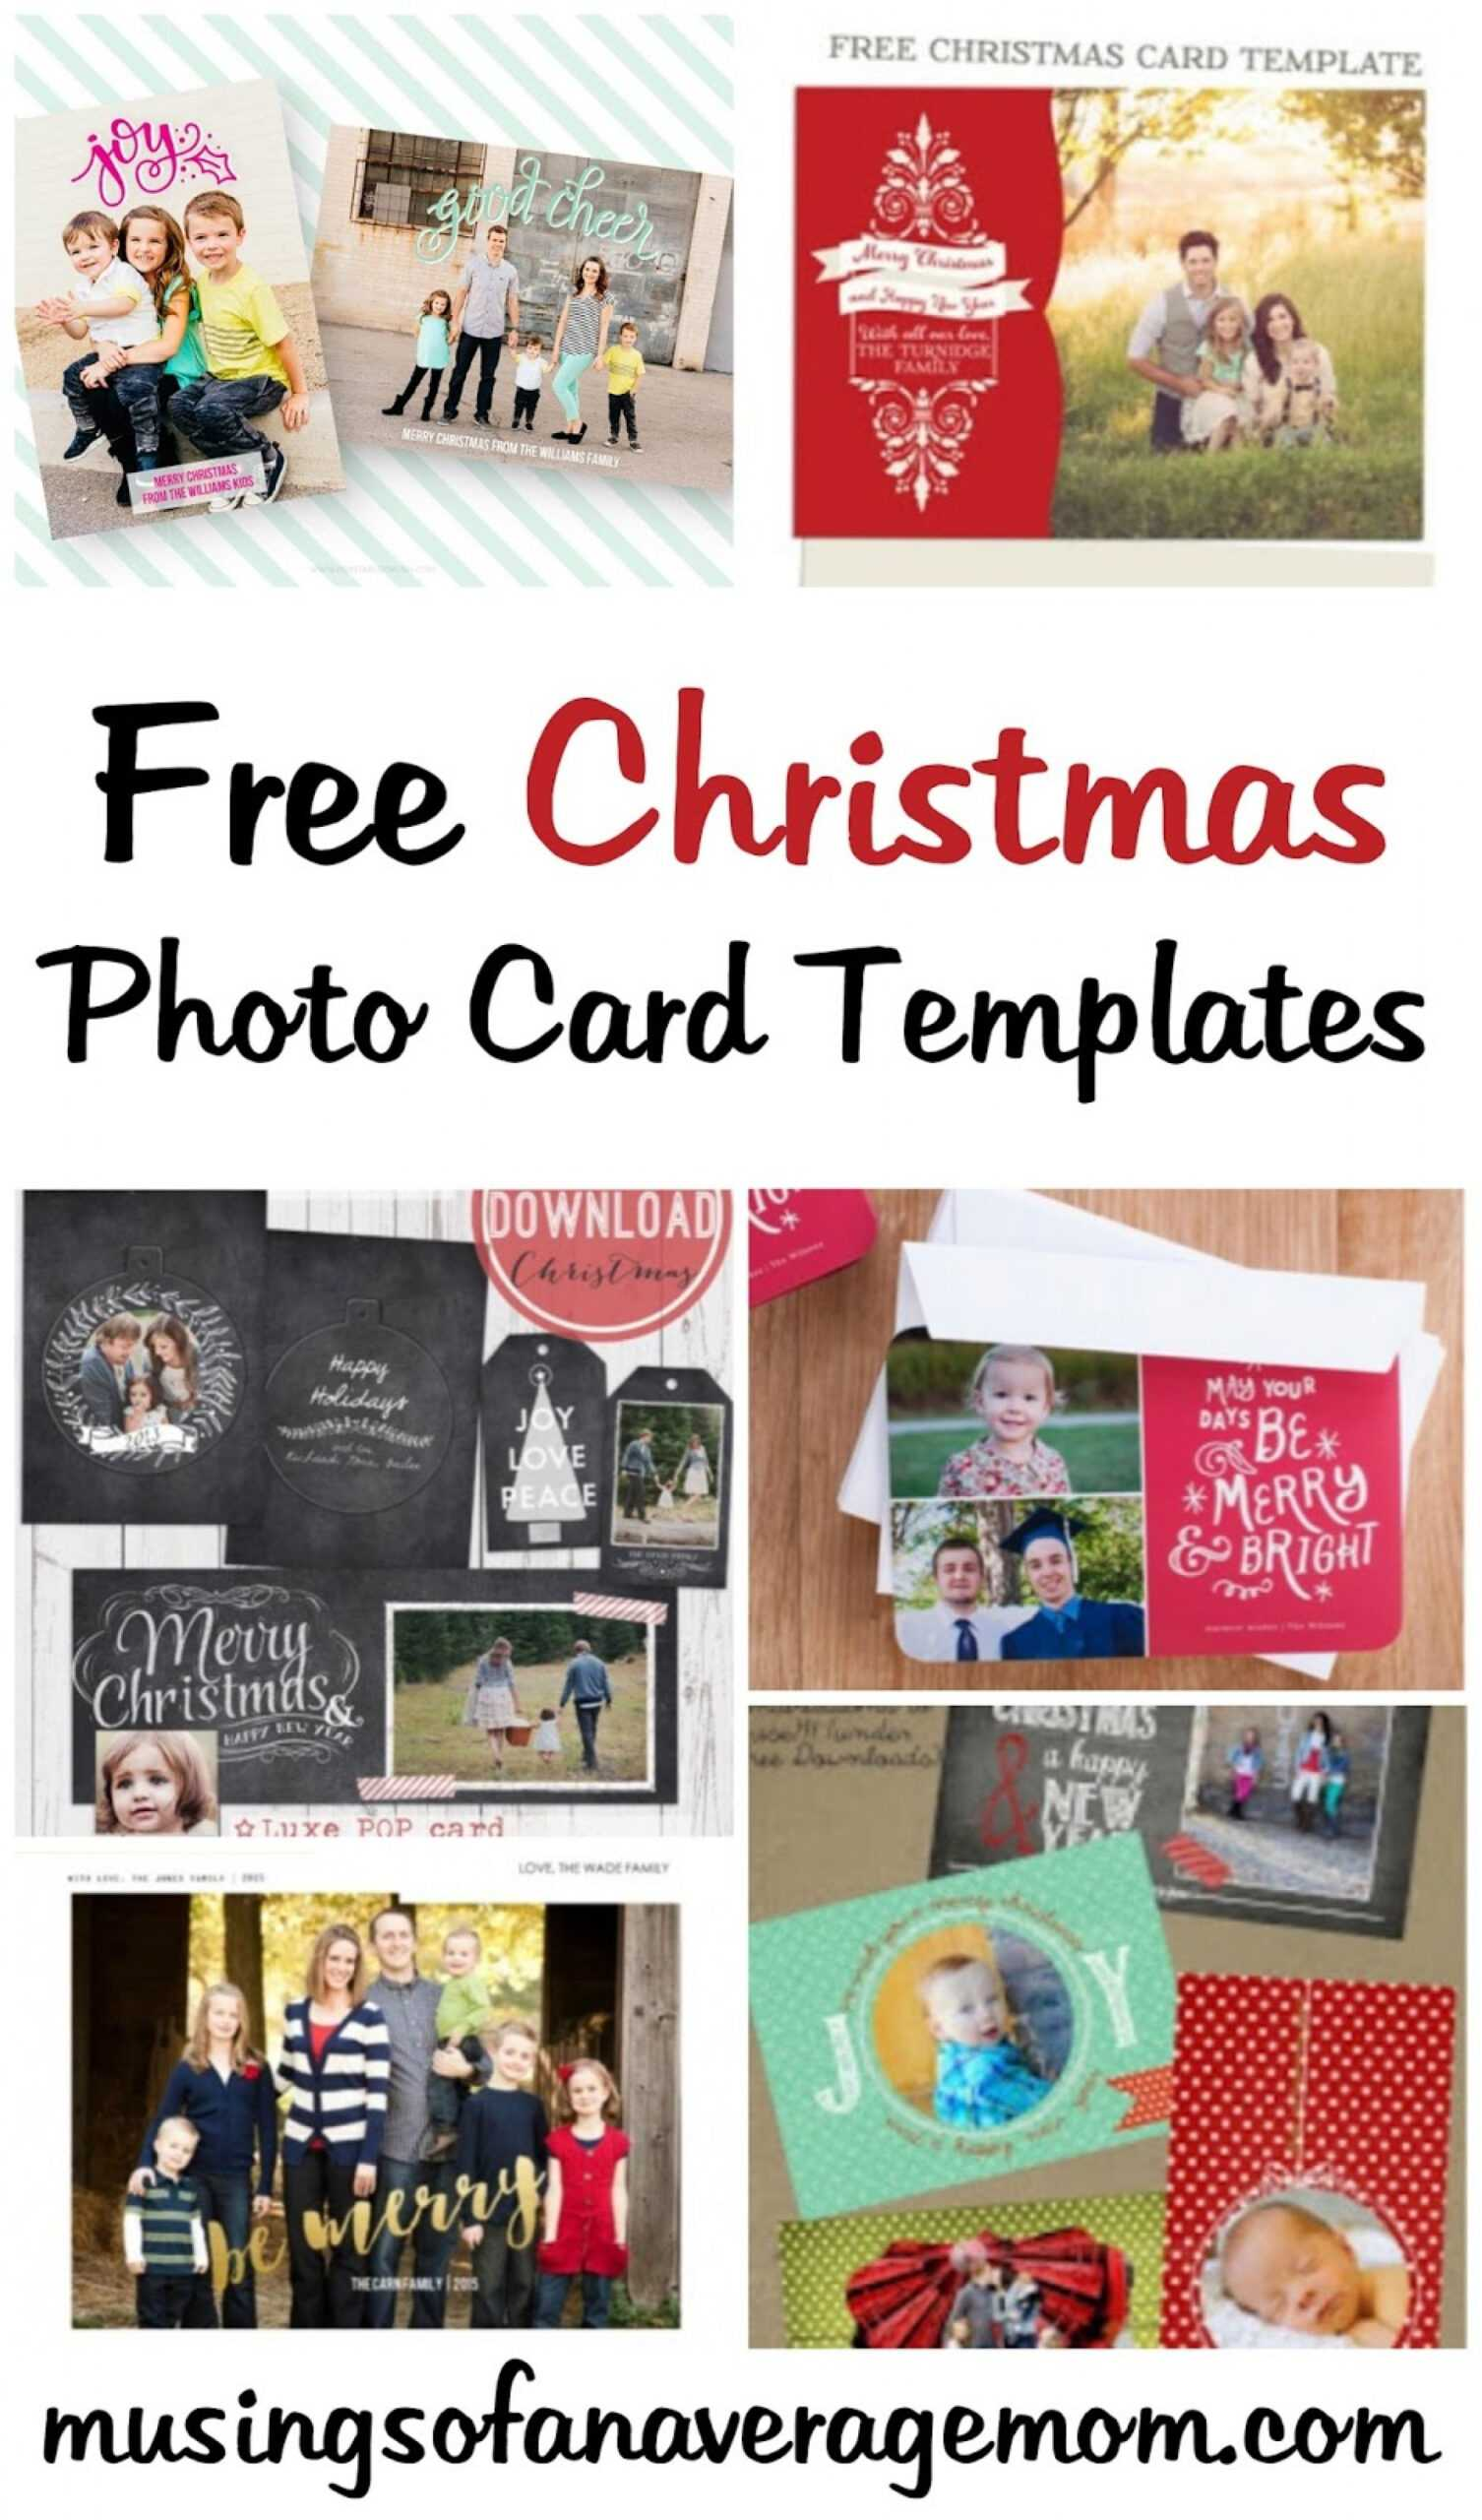 009 Photo Christmas Card Templates Template Unusual Ideas Intended For Free Christmas Card Templates For Photographers